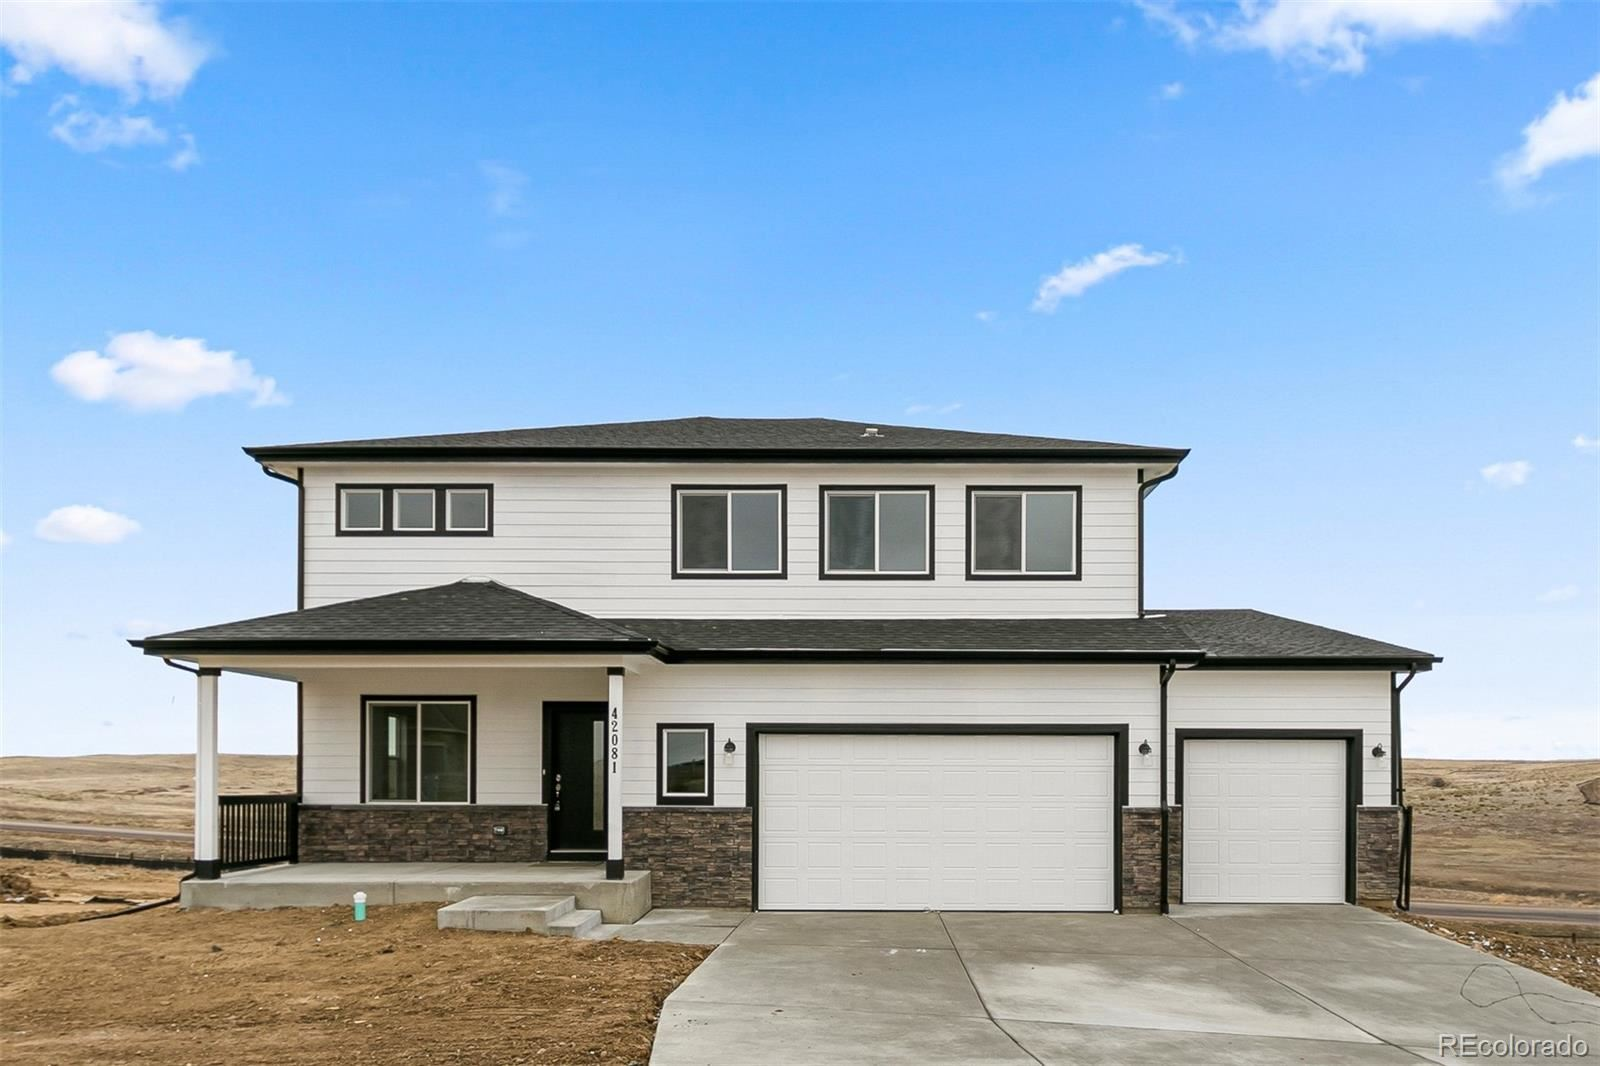 42081 N Pinehurst Circle, Elizabeth, CO 80107 - #: 4276444